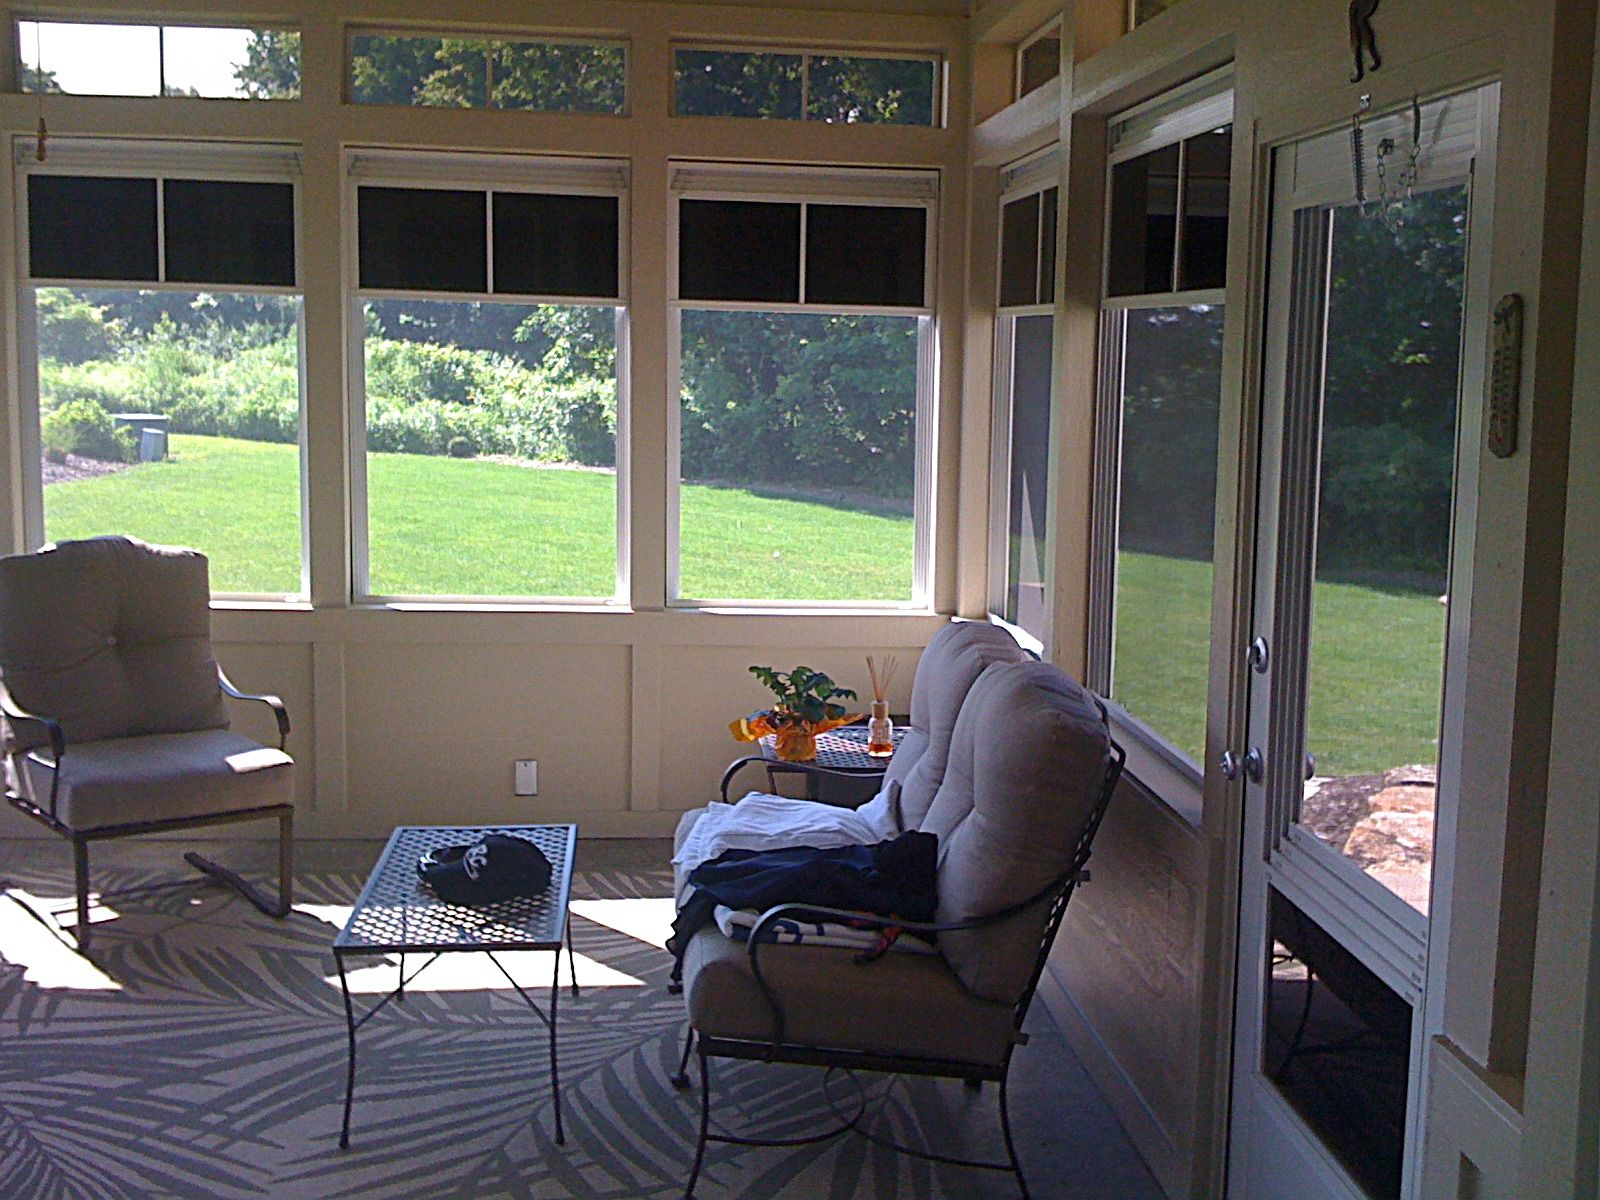 Best Windows For Screened Porch Best Windows For Screened Porch Insulation  Removable Windows For The Porch Or Sunroom Home 1162 X 778 Auf Best Windows  For ...